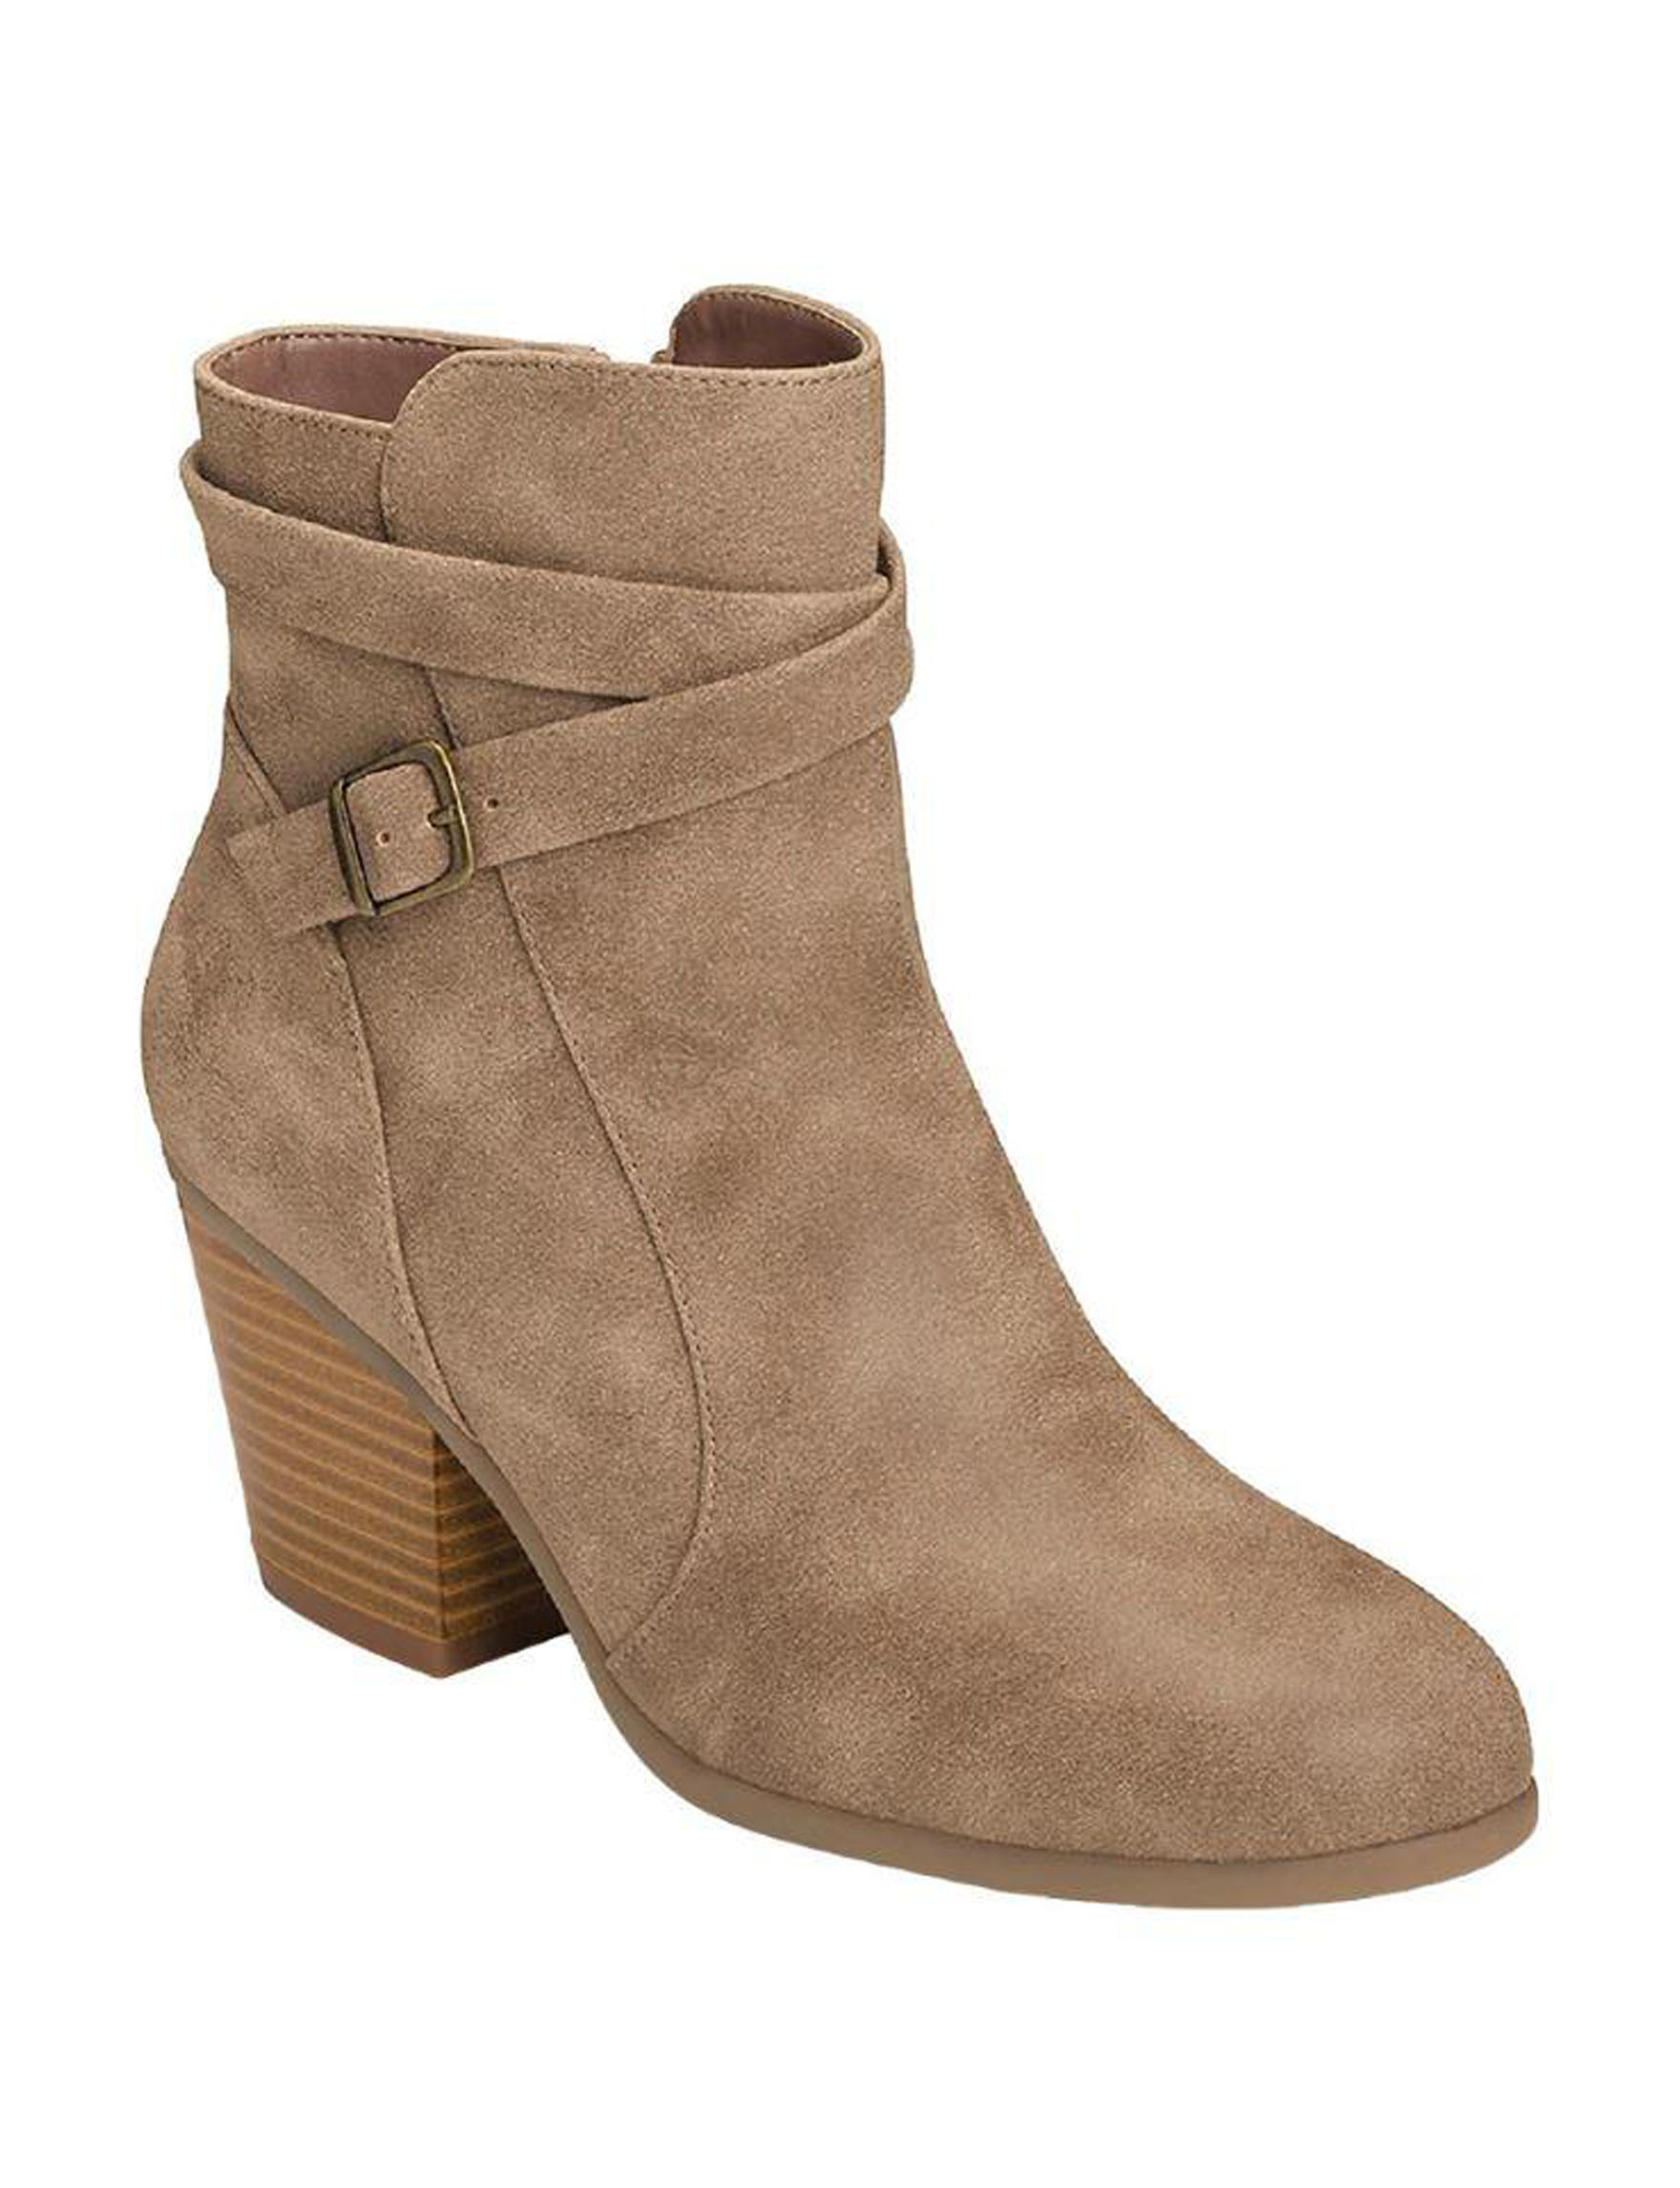 A2 by Aerosoles Taupe Ankle Boots & Booties